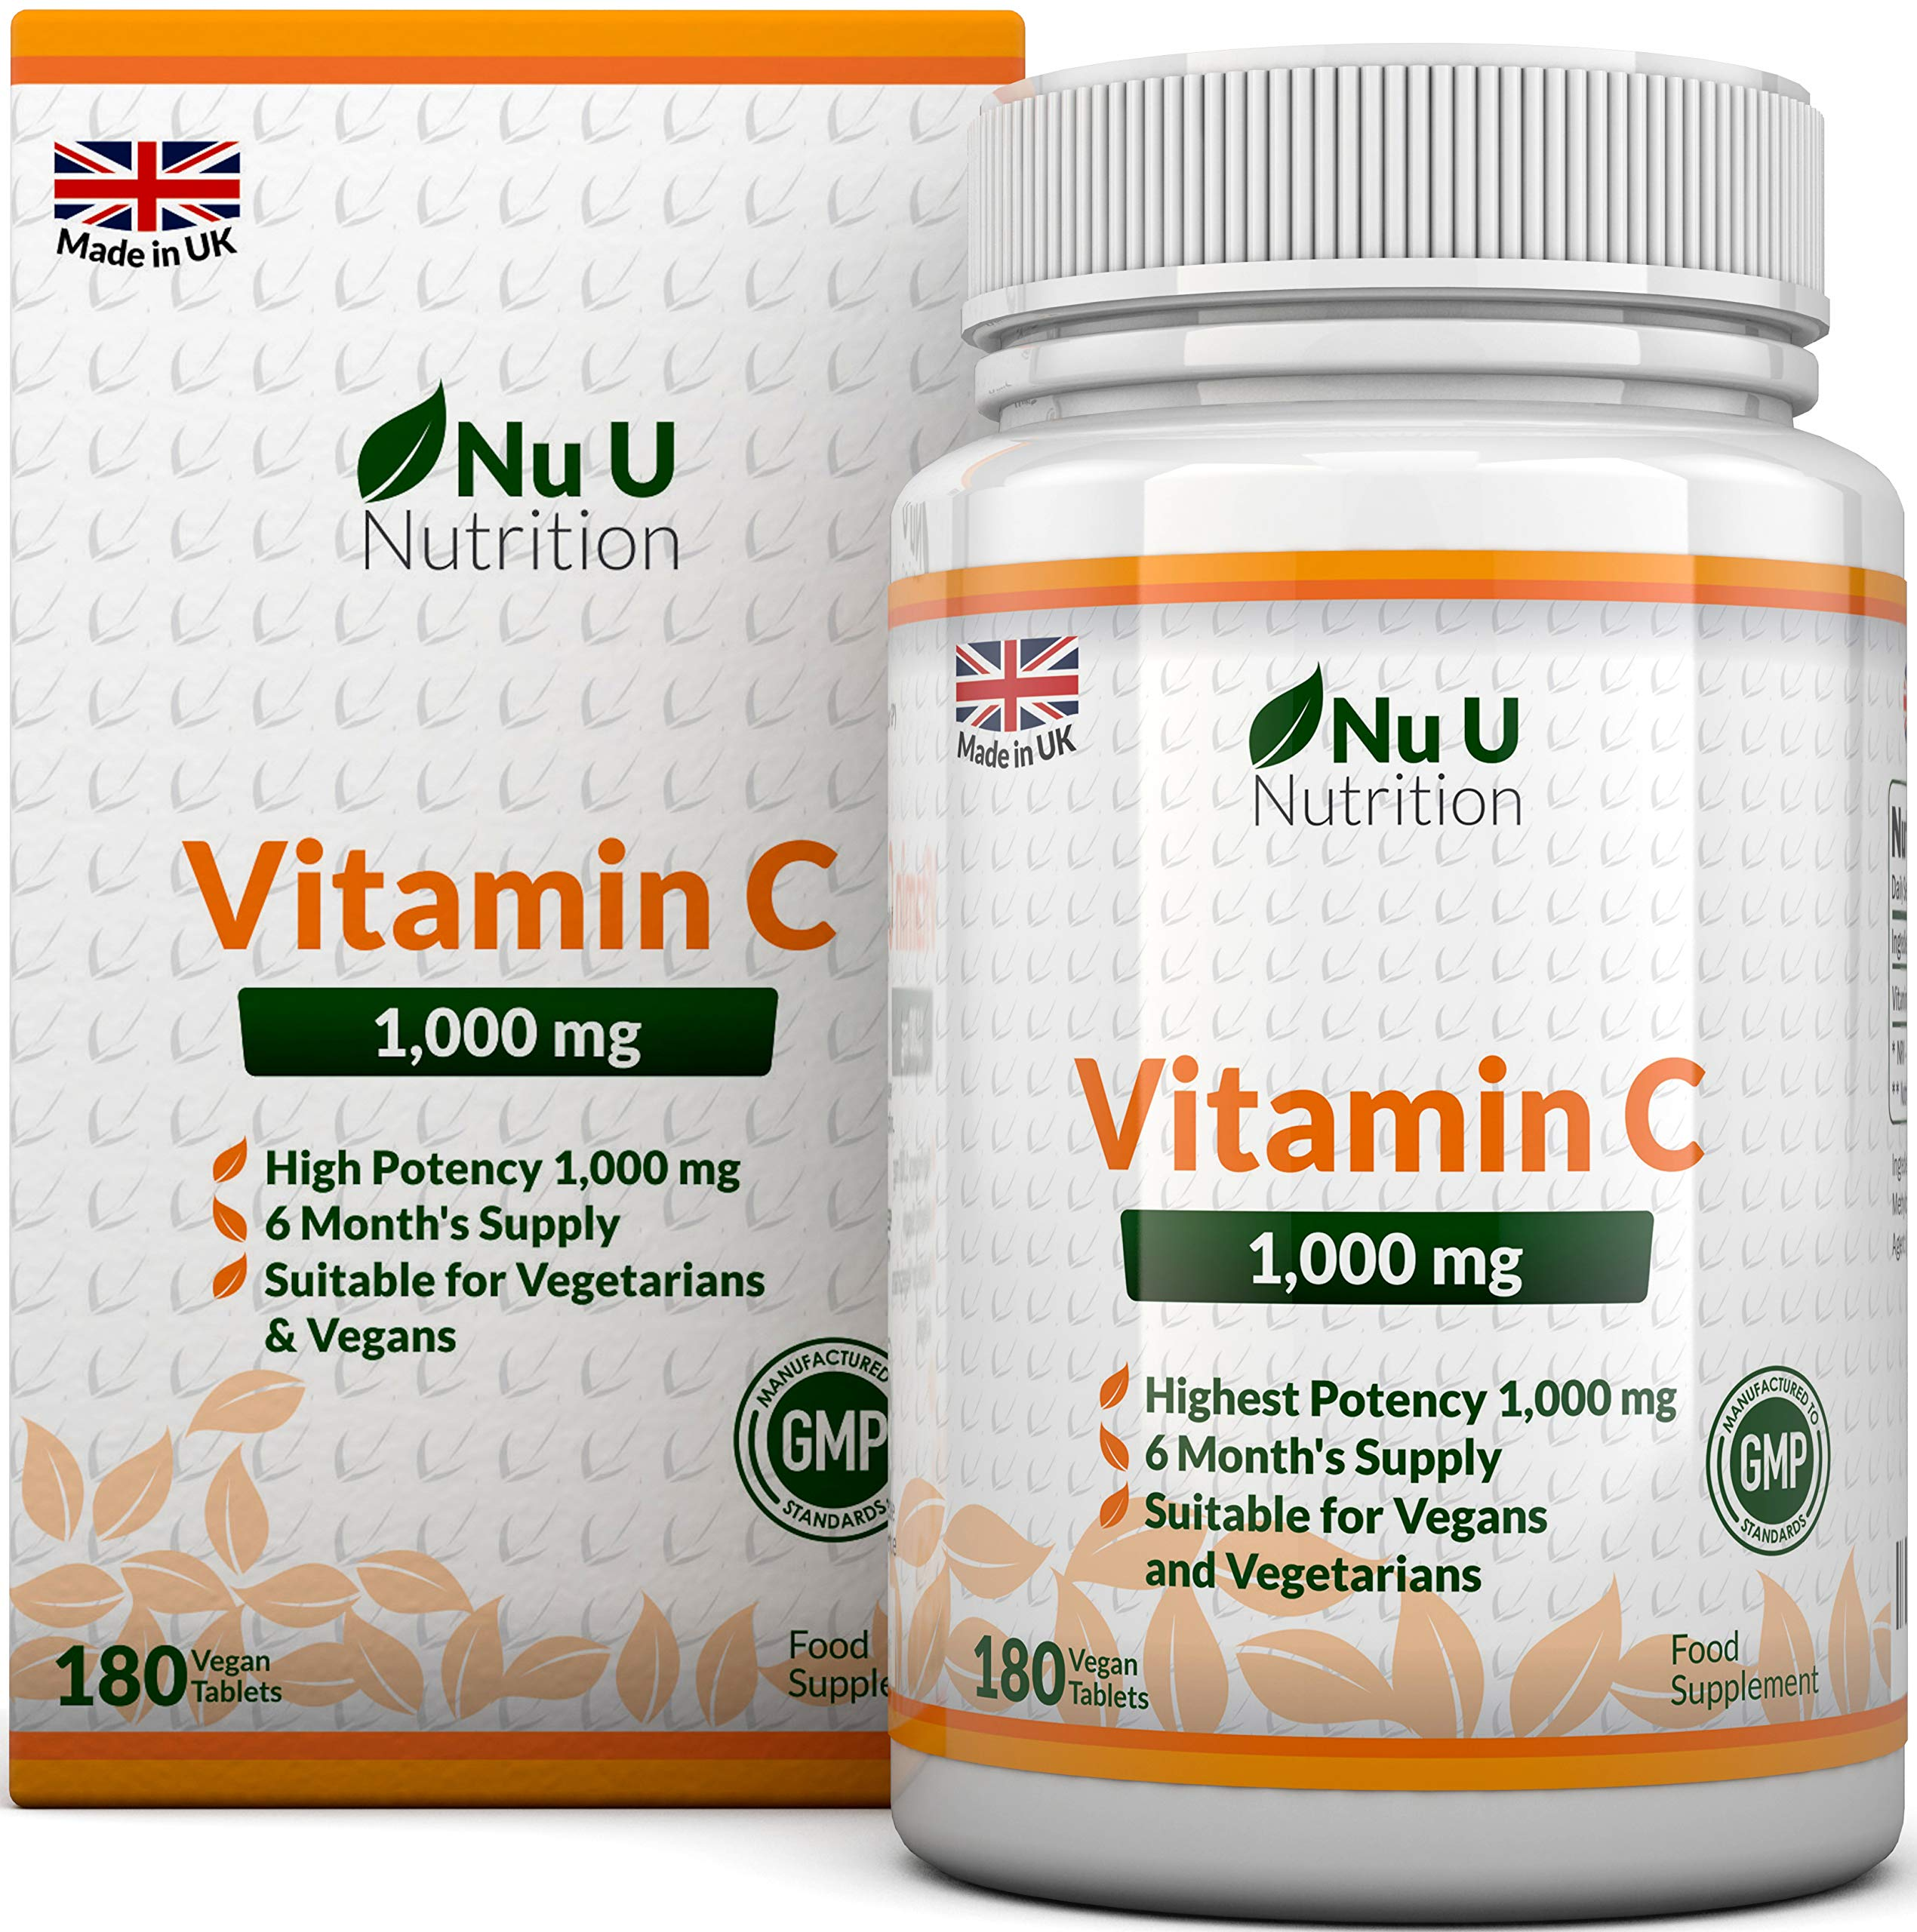 Vitamin C 1000mg   180 Tablets (6 Month's Supply)   Ascorbic Acid   Suitable for Vegetarians & Vegans by Nu U Nutrition product image